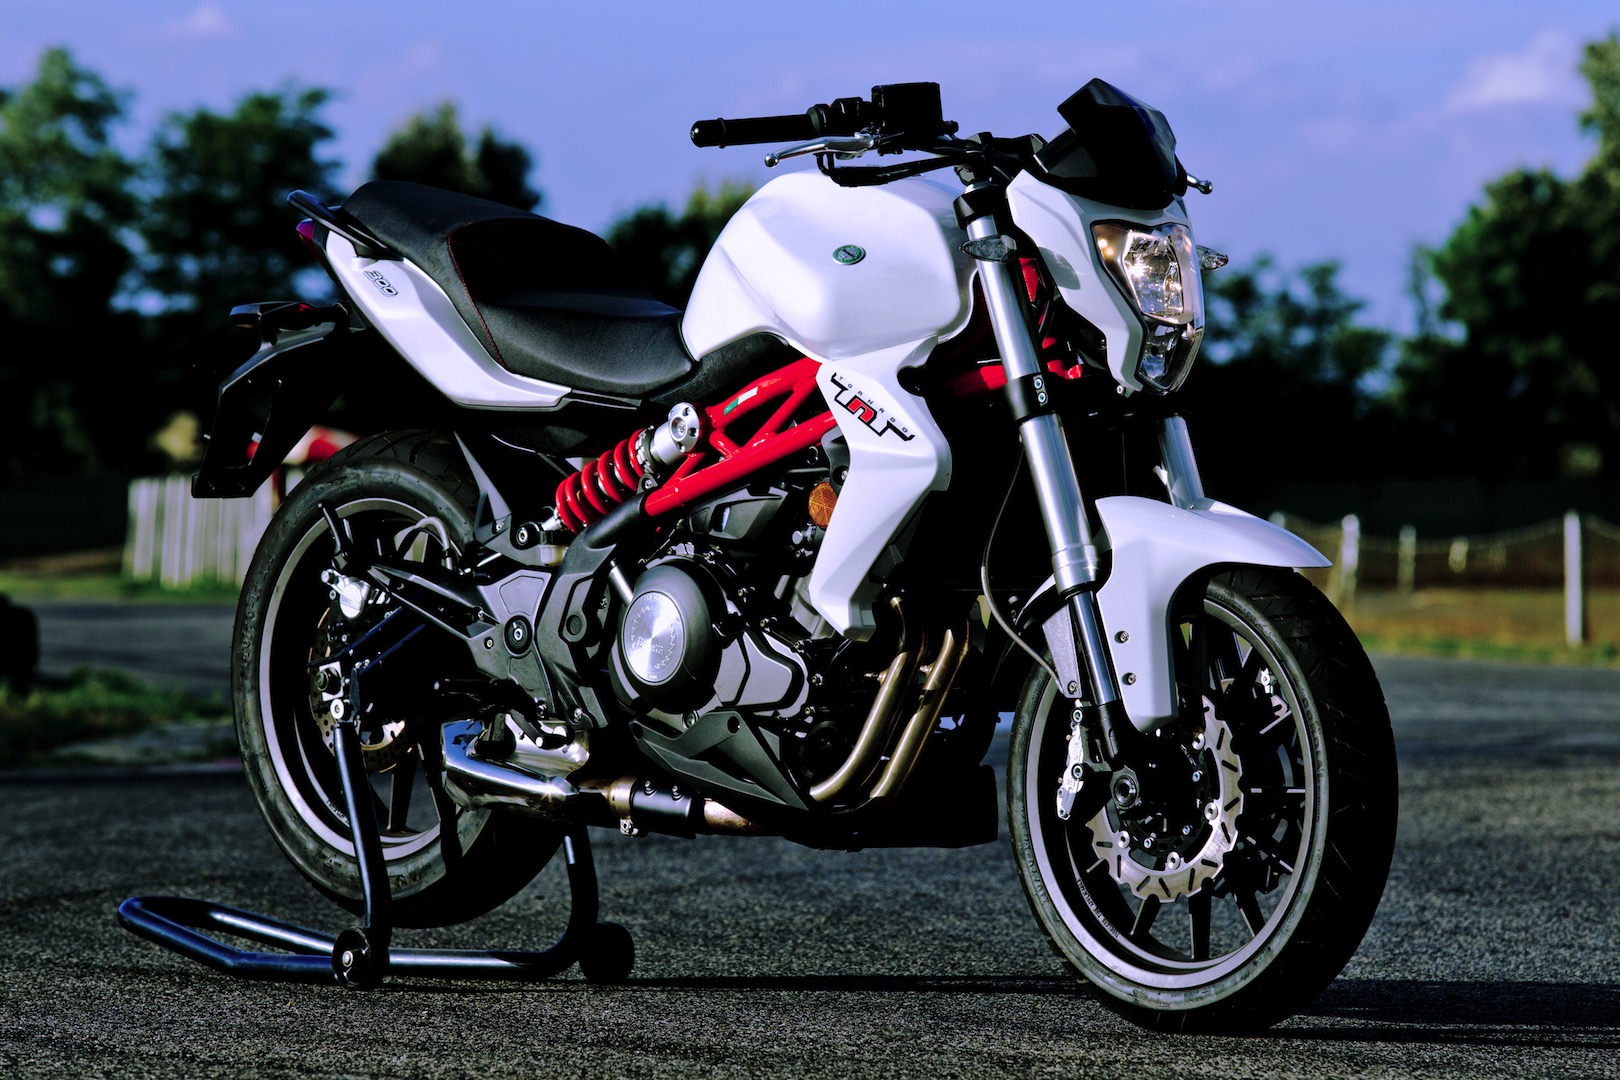 2018 Benelli Tornado TNT 300 Review (16 Fast Facts)